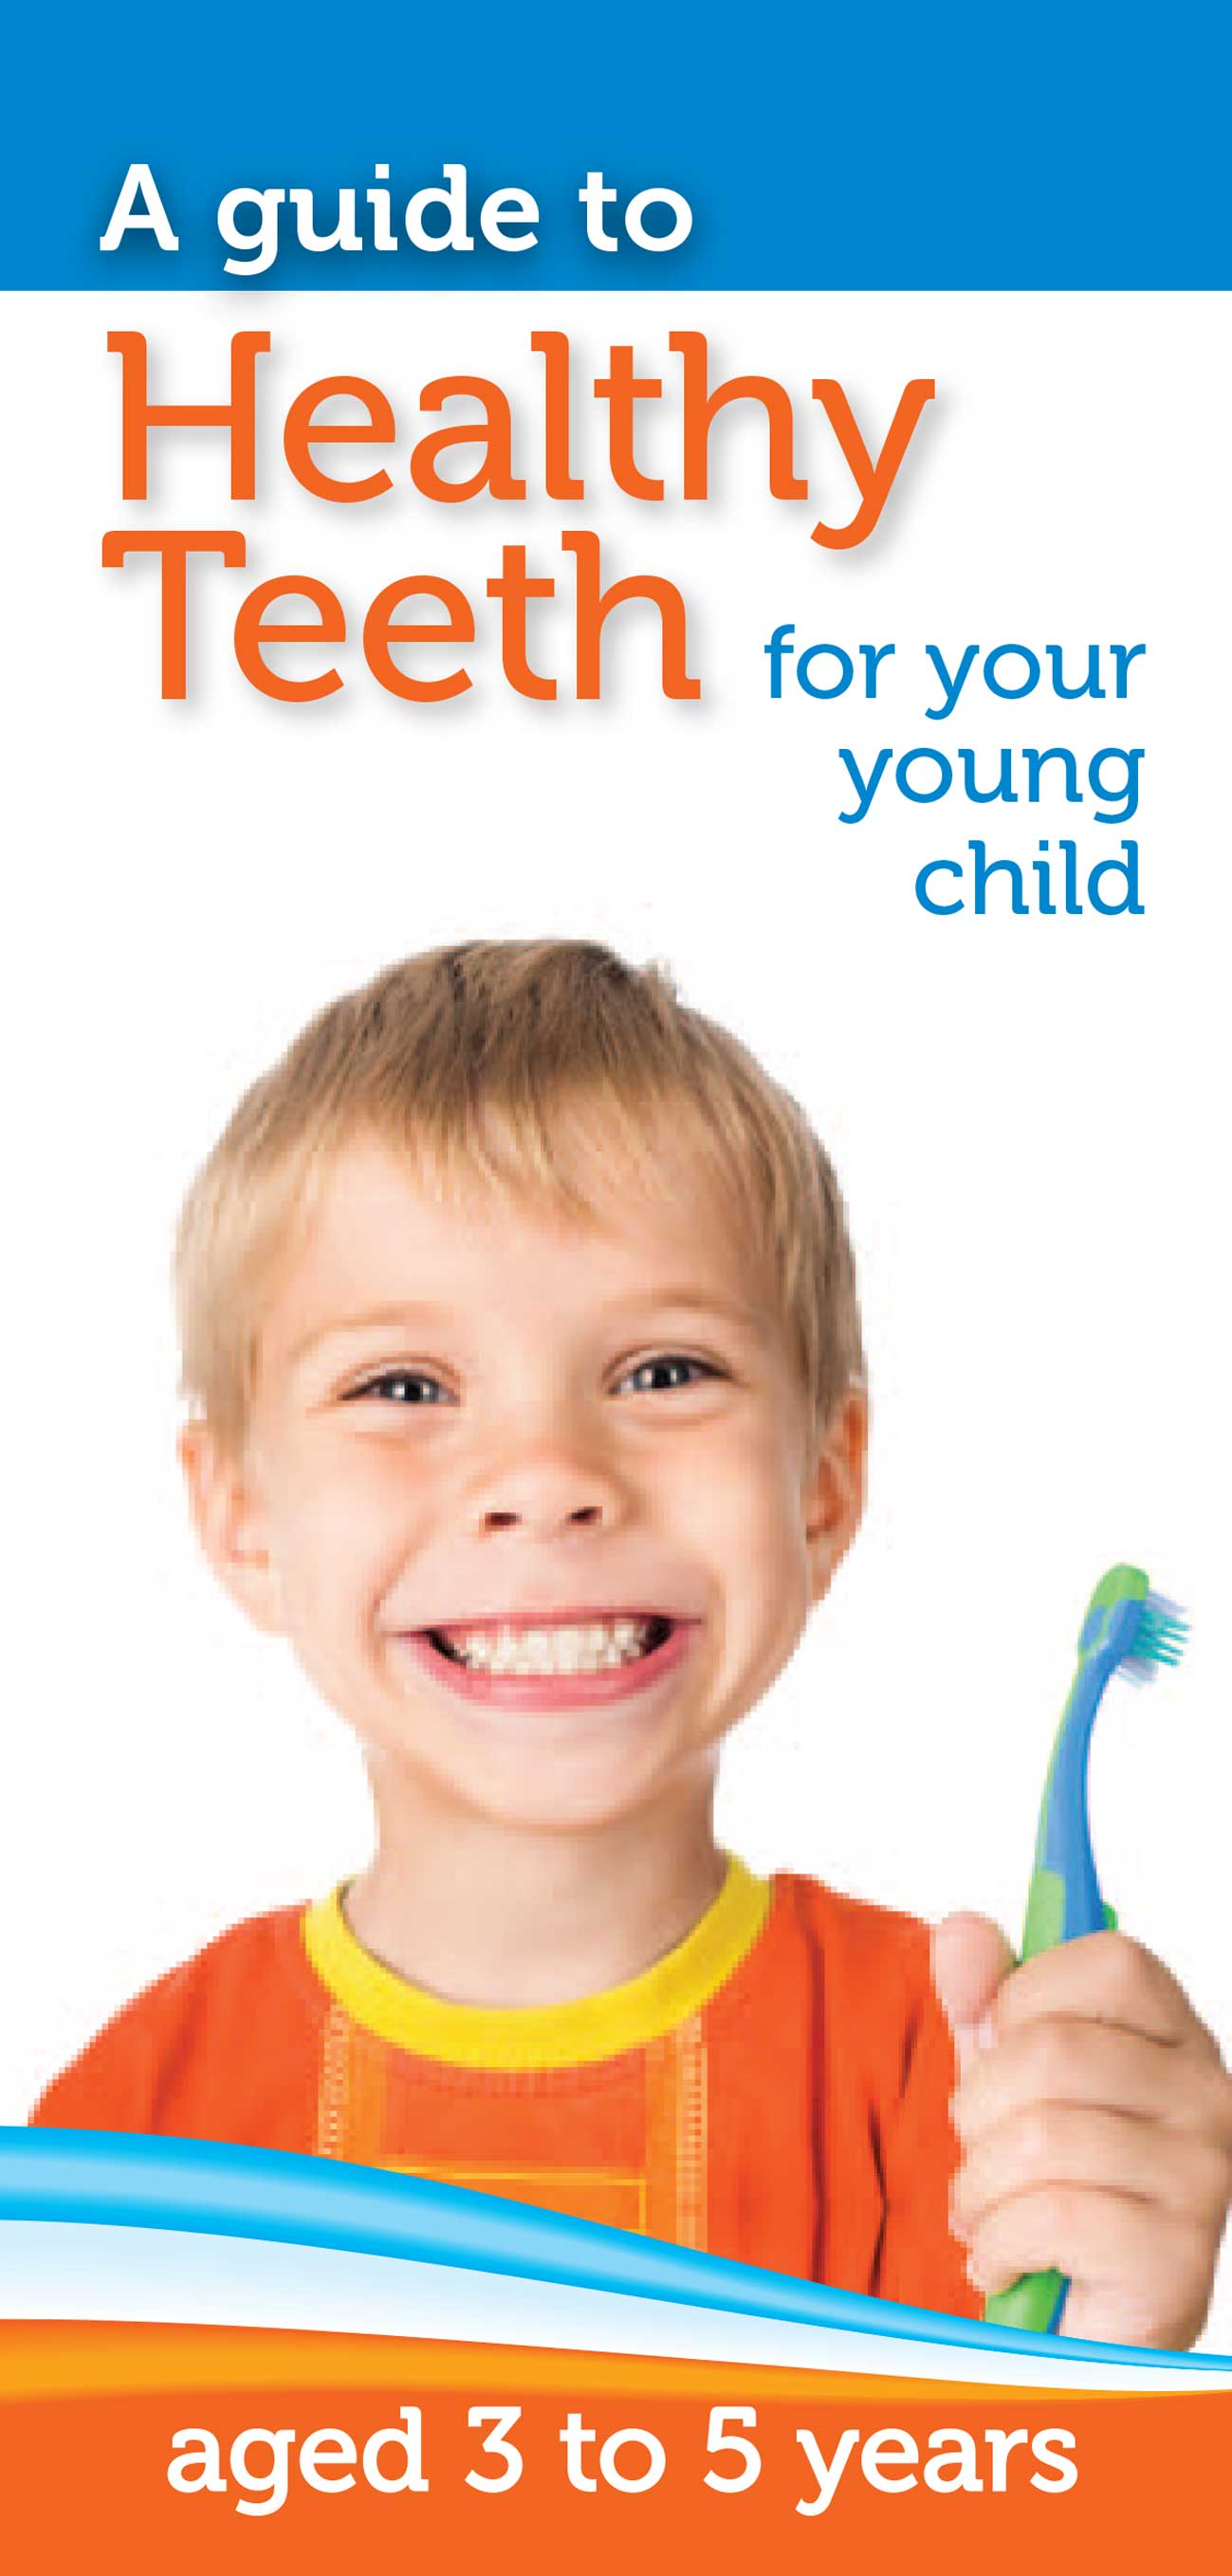 Healthy Teeth for your young child